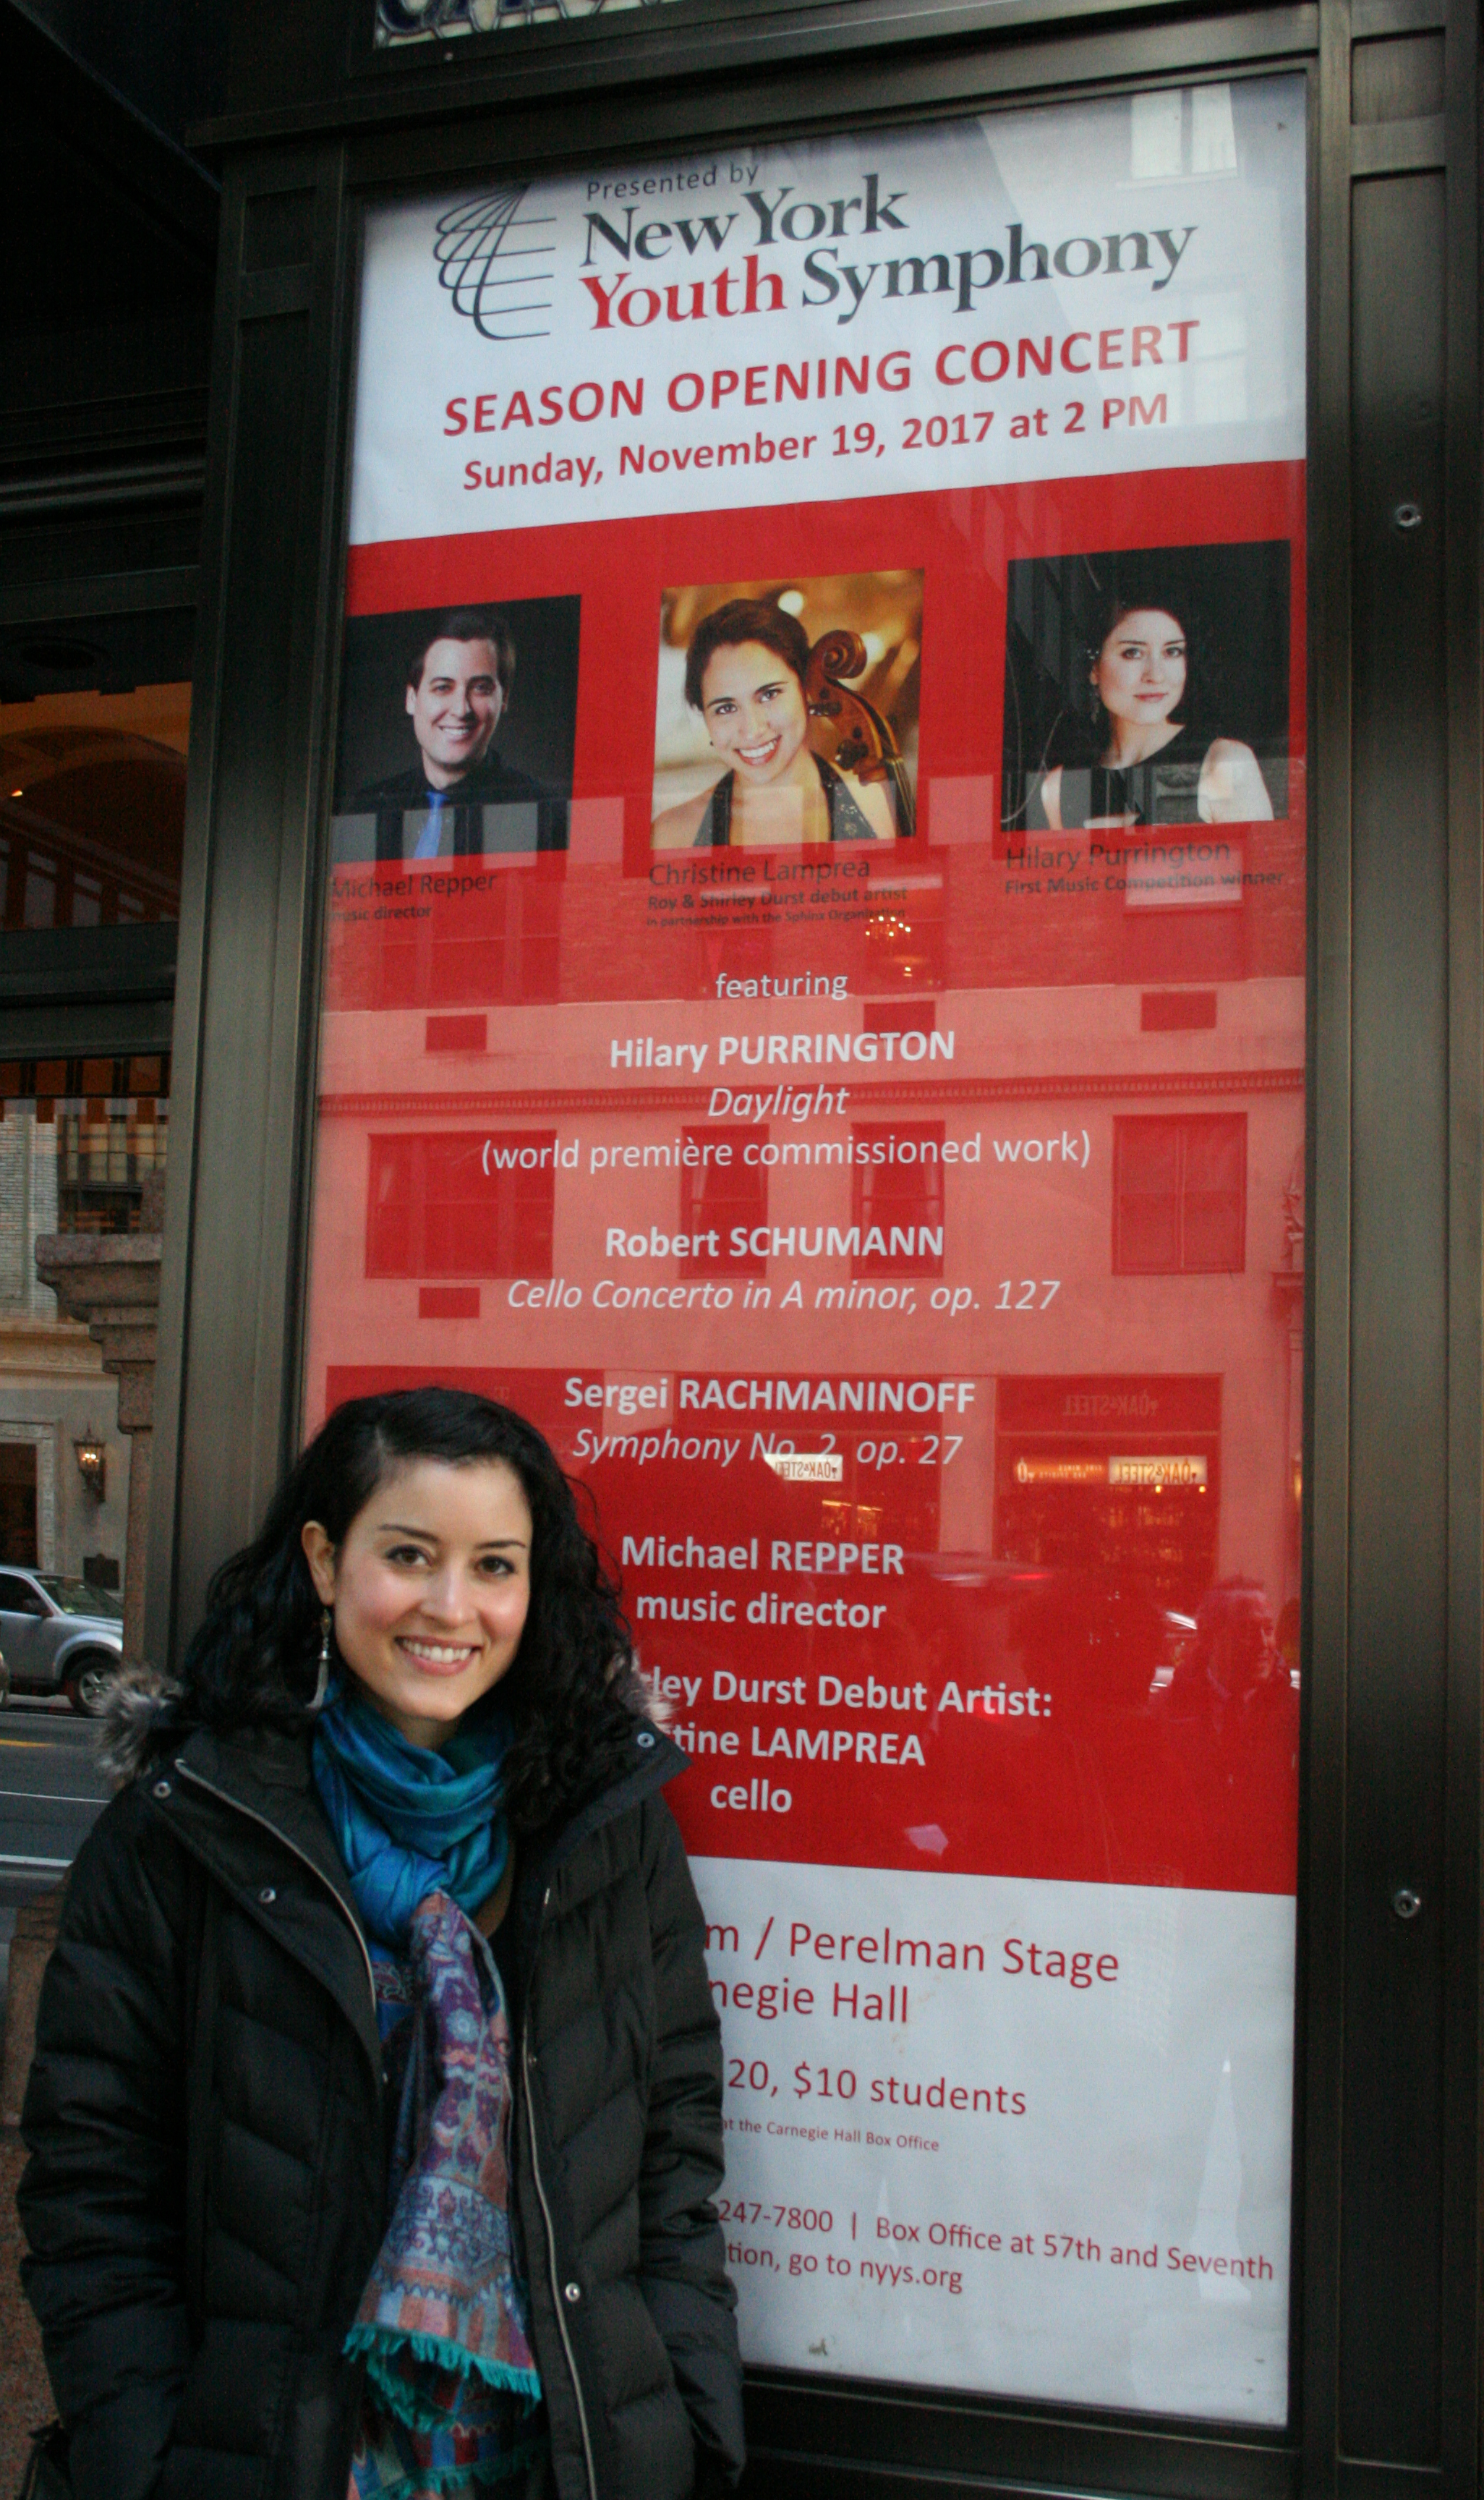 Hilary Purrington standing outside Carnegie Hall in front of the New York Youth Symphony November 19, 2017 Concert Poster featuring a photo of her and listing her world premiere performance.